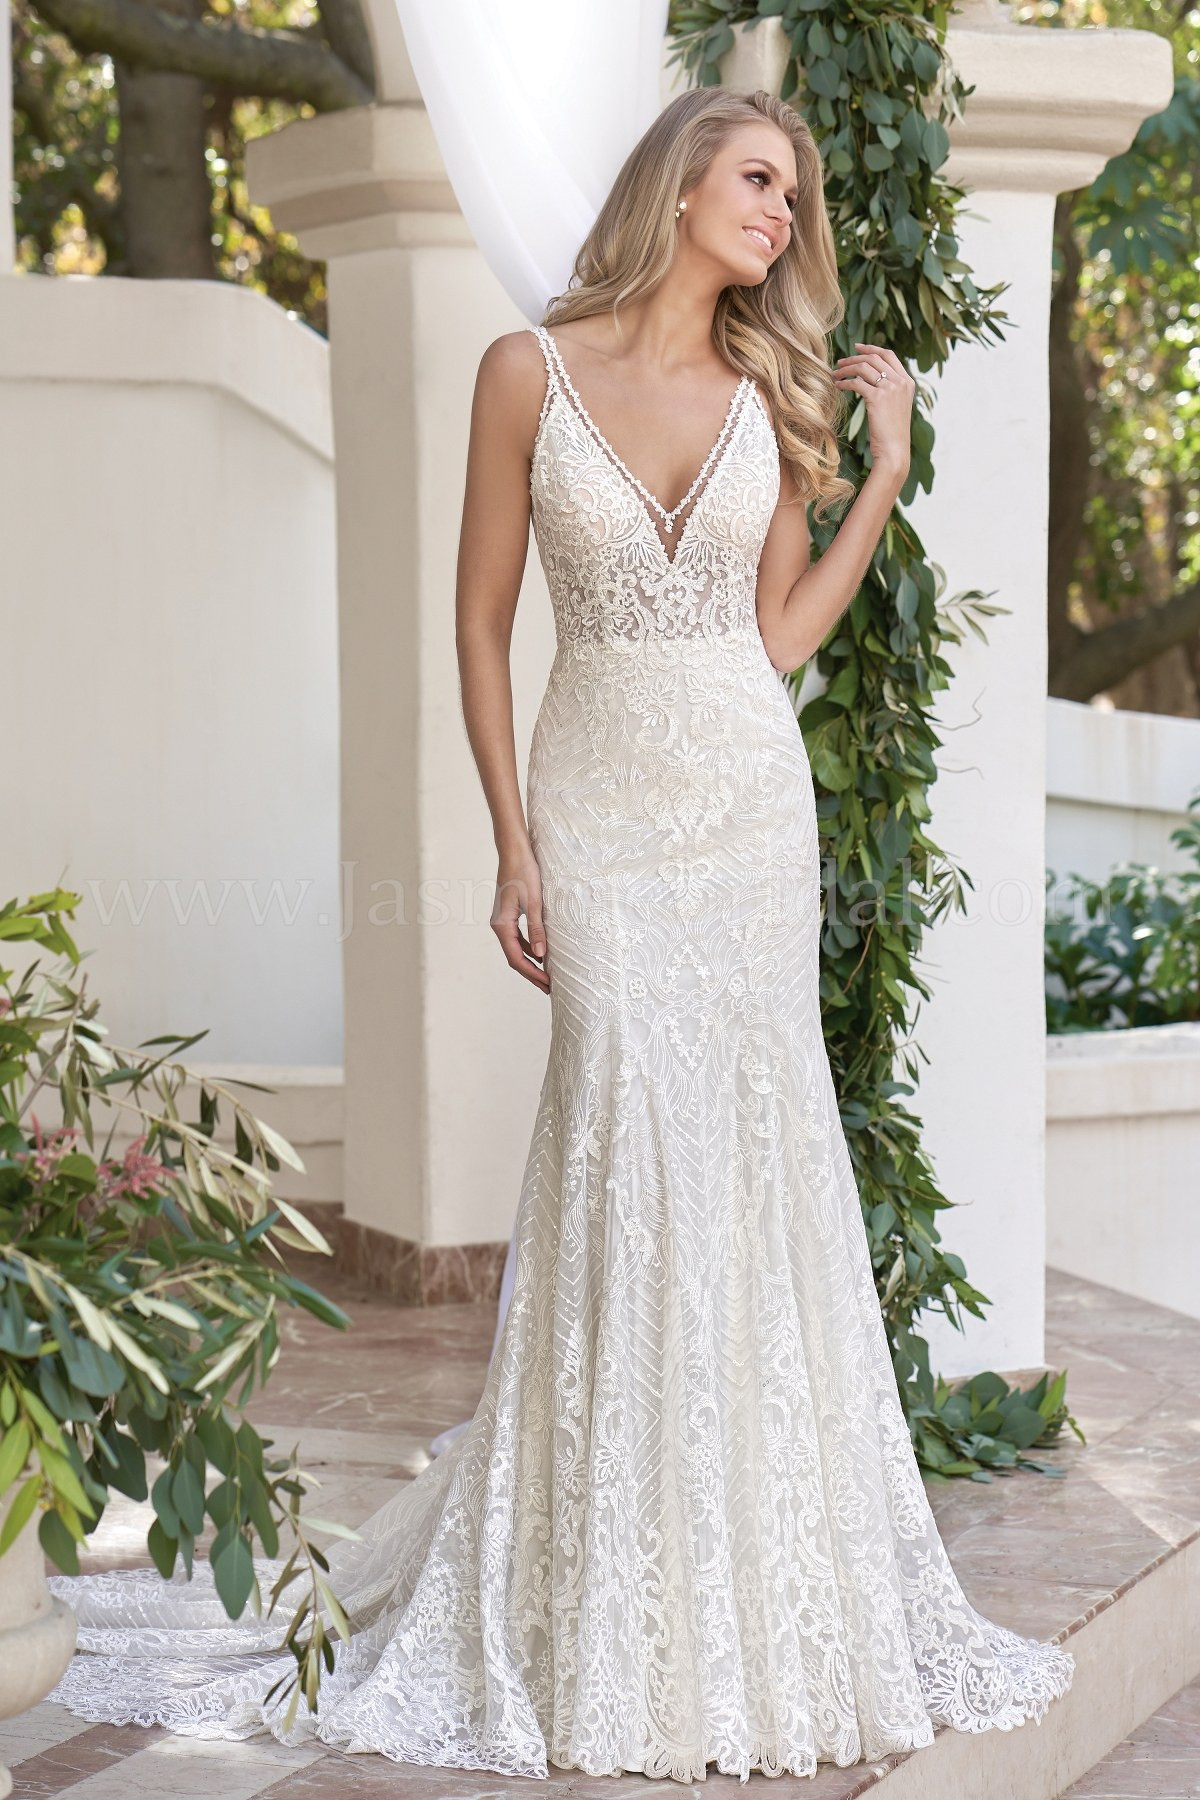 Lace Wedding Gowns  T Illusion Bodice V neck Embroidered Lace & Sequin